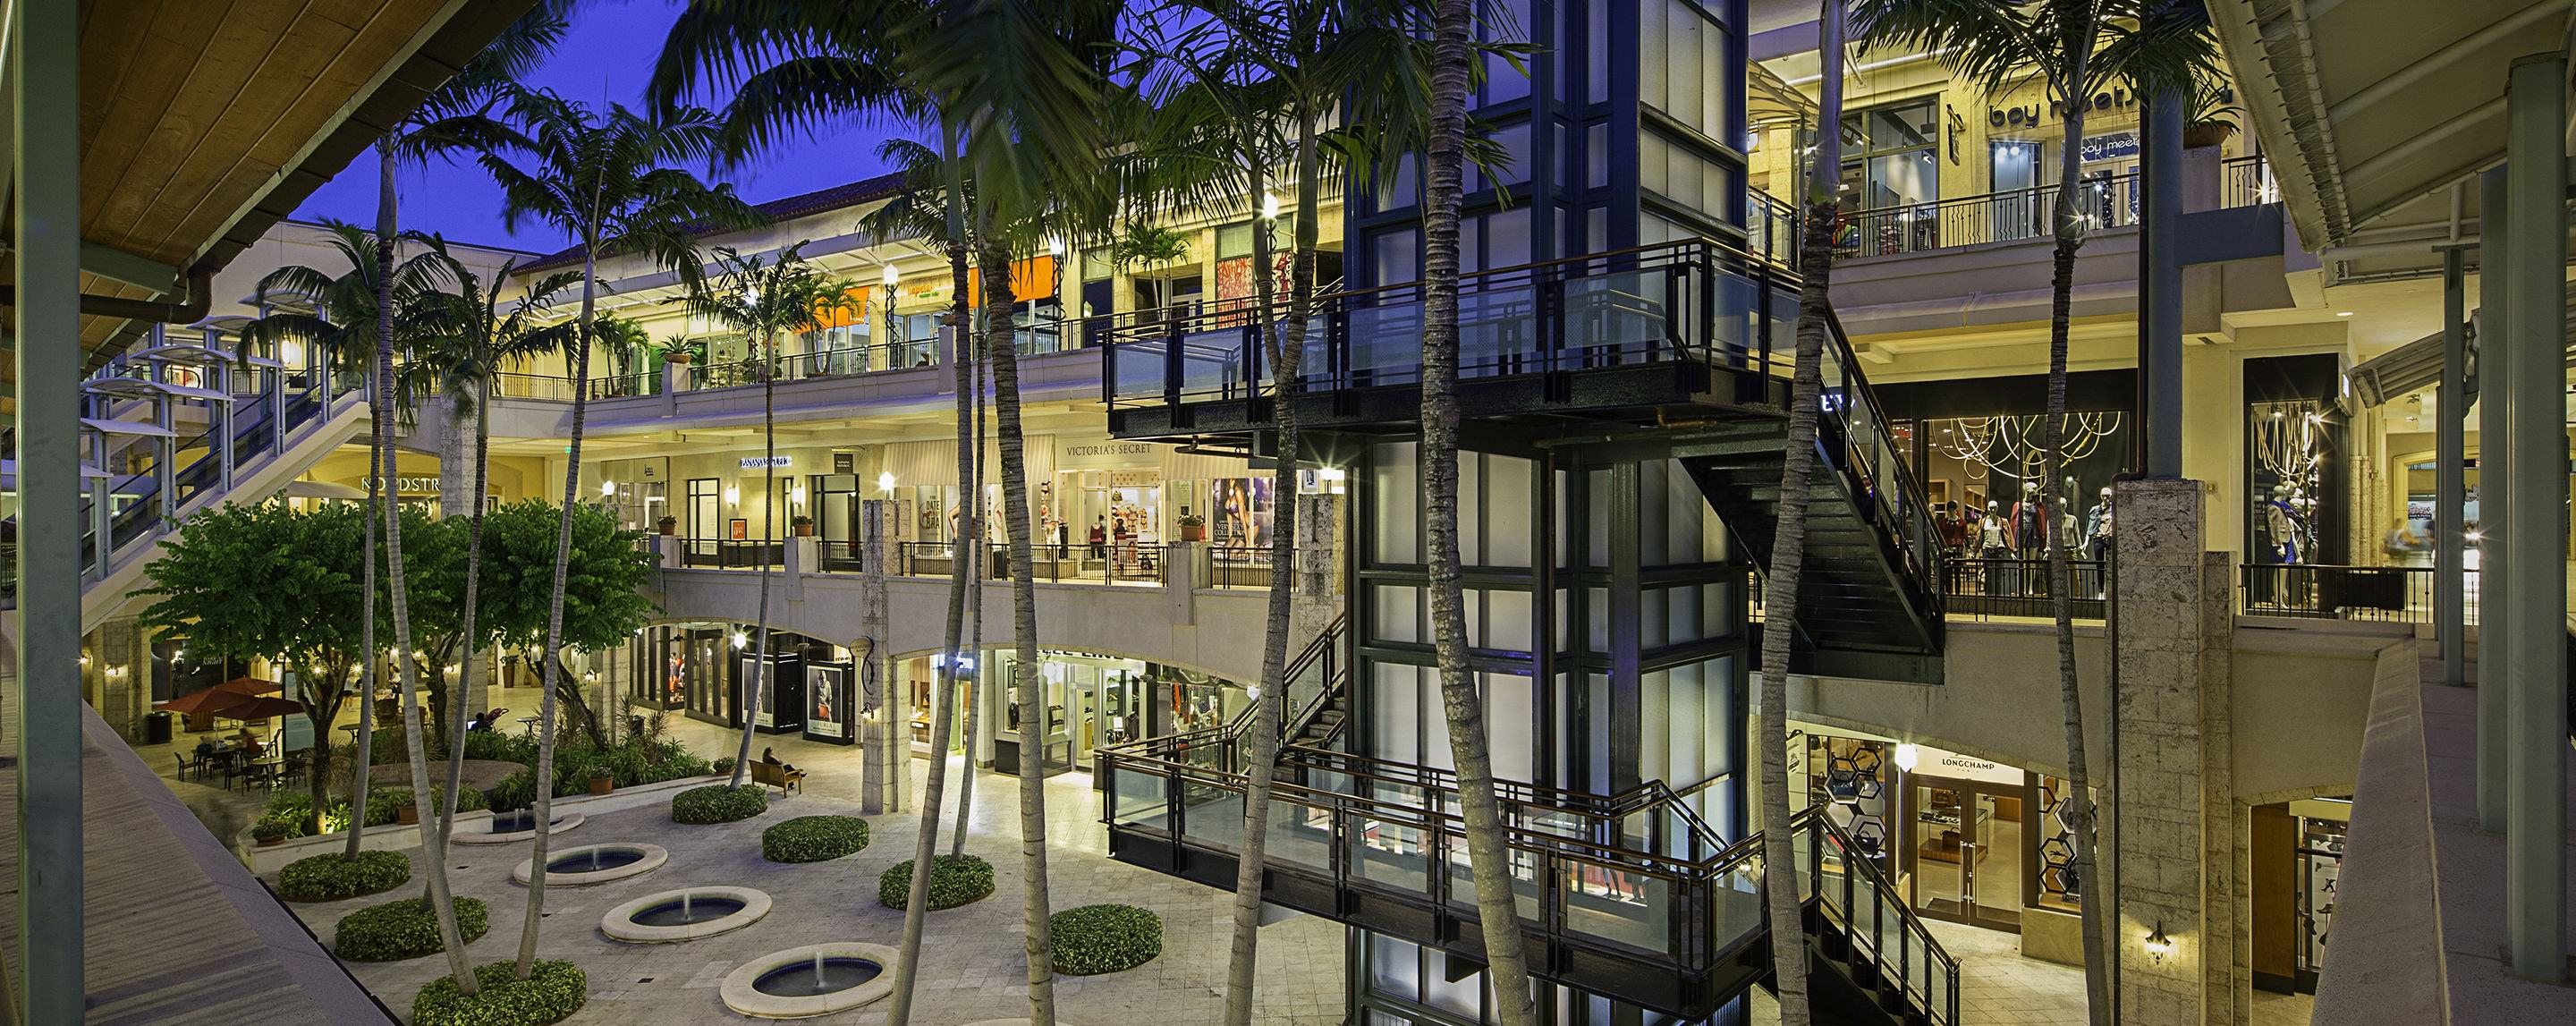 An outdoor enclosed shopping center with palm trees planted in the middle and three stories of shops.